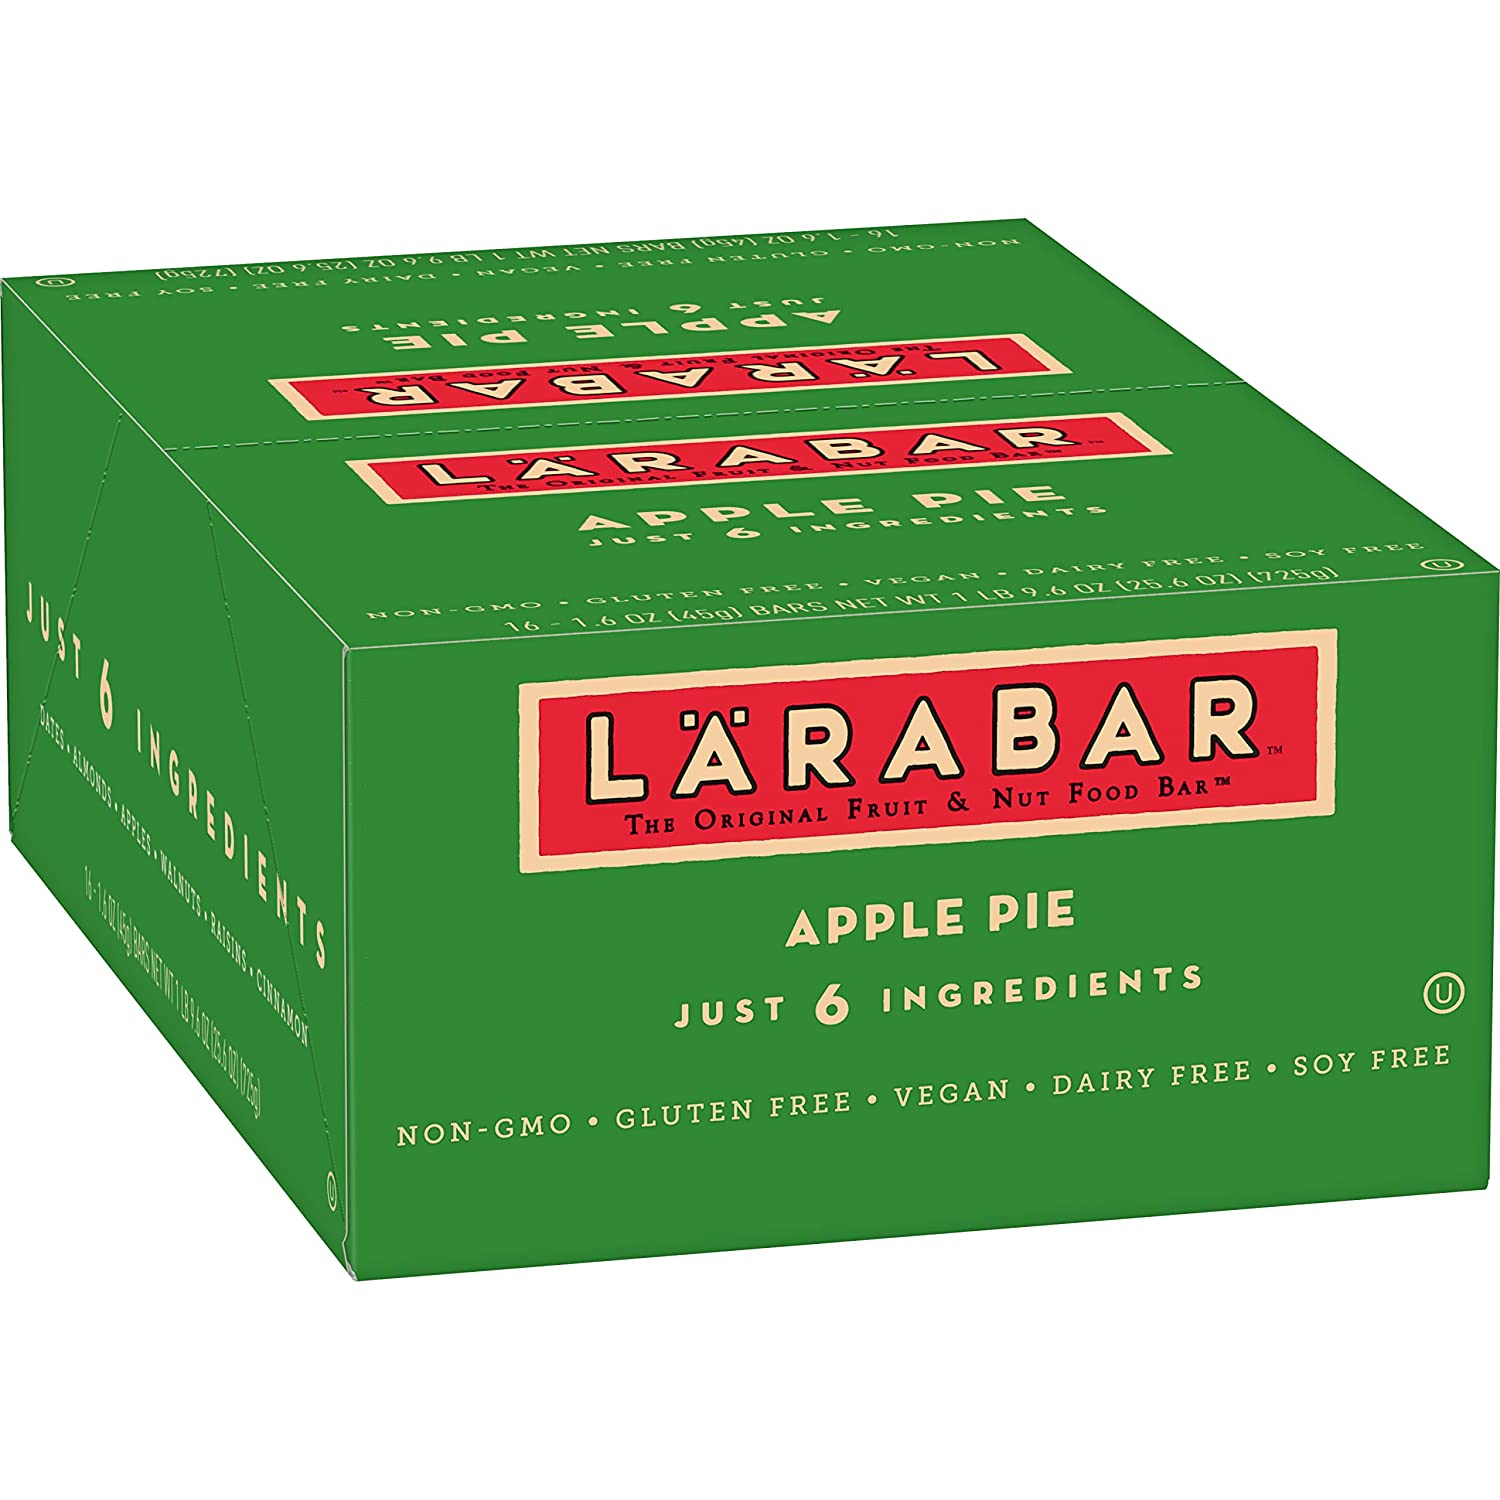 Larabar Gluten Free Bar, Apple Pie, 1.6 oz Bars (16 Count), Whole Food Gluten Free Bars, Dairy Free Snacks